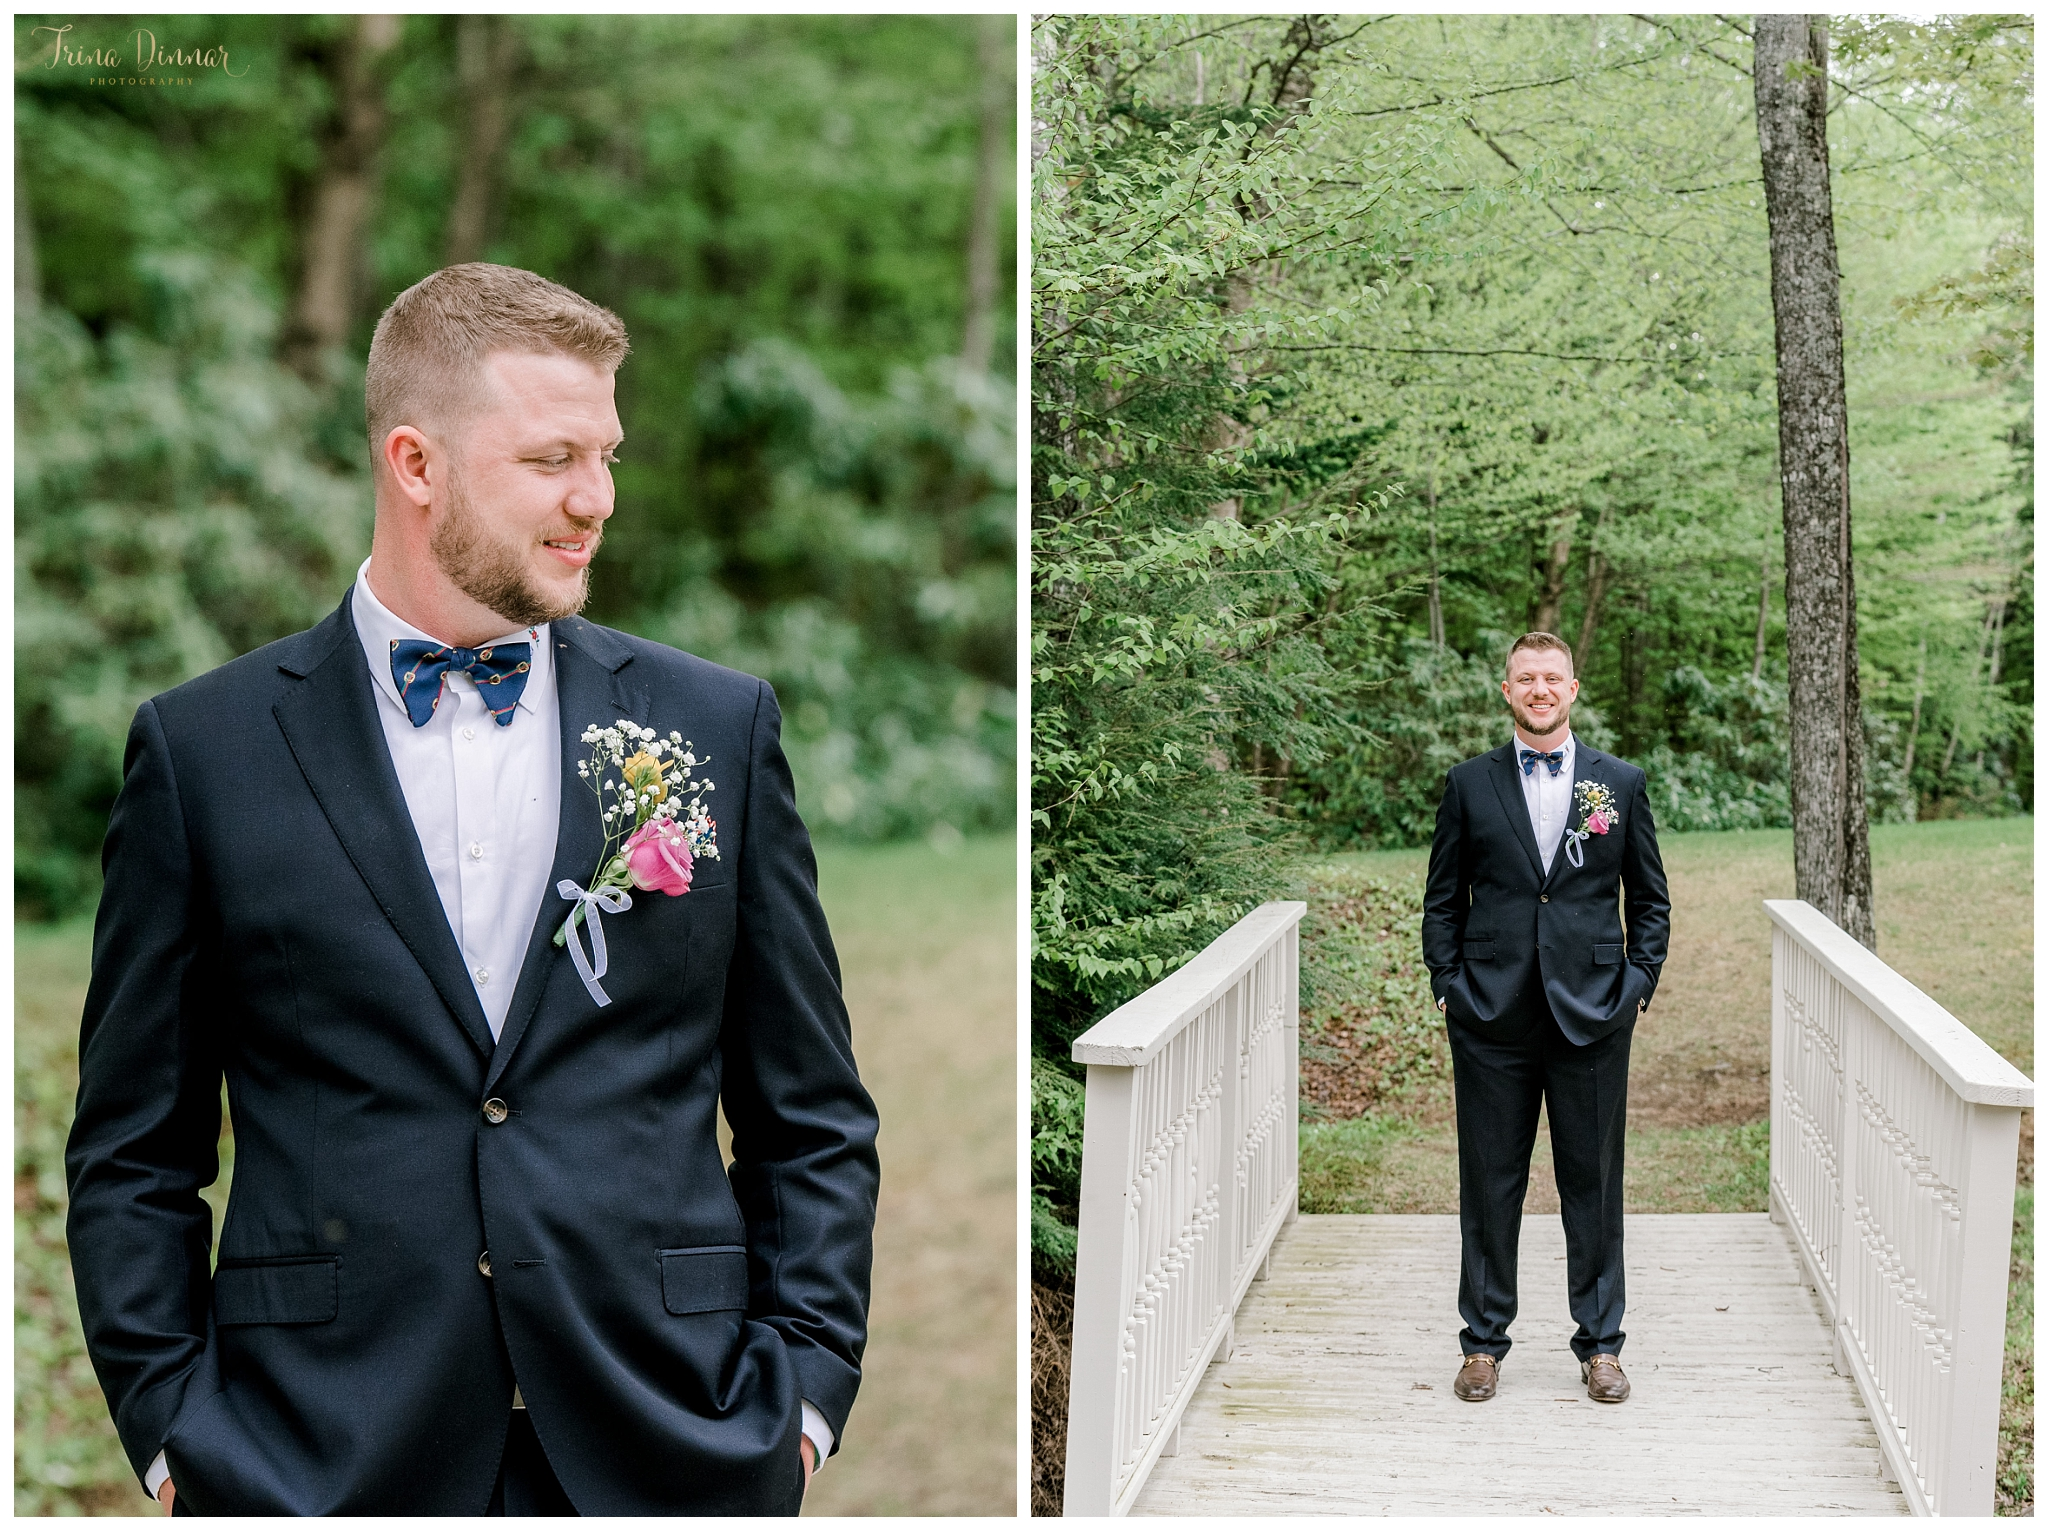 Groom Wedding Portraits at Sunday River